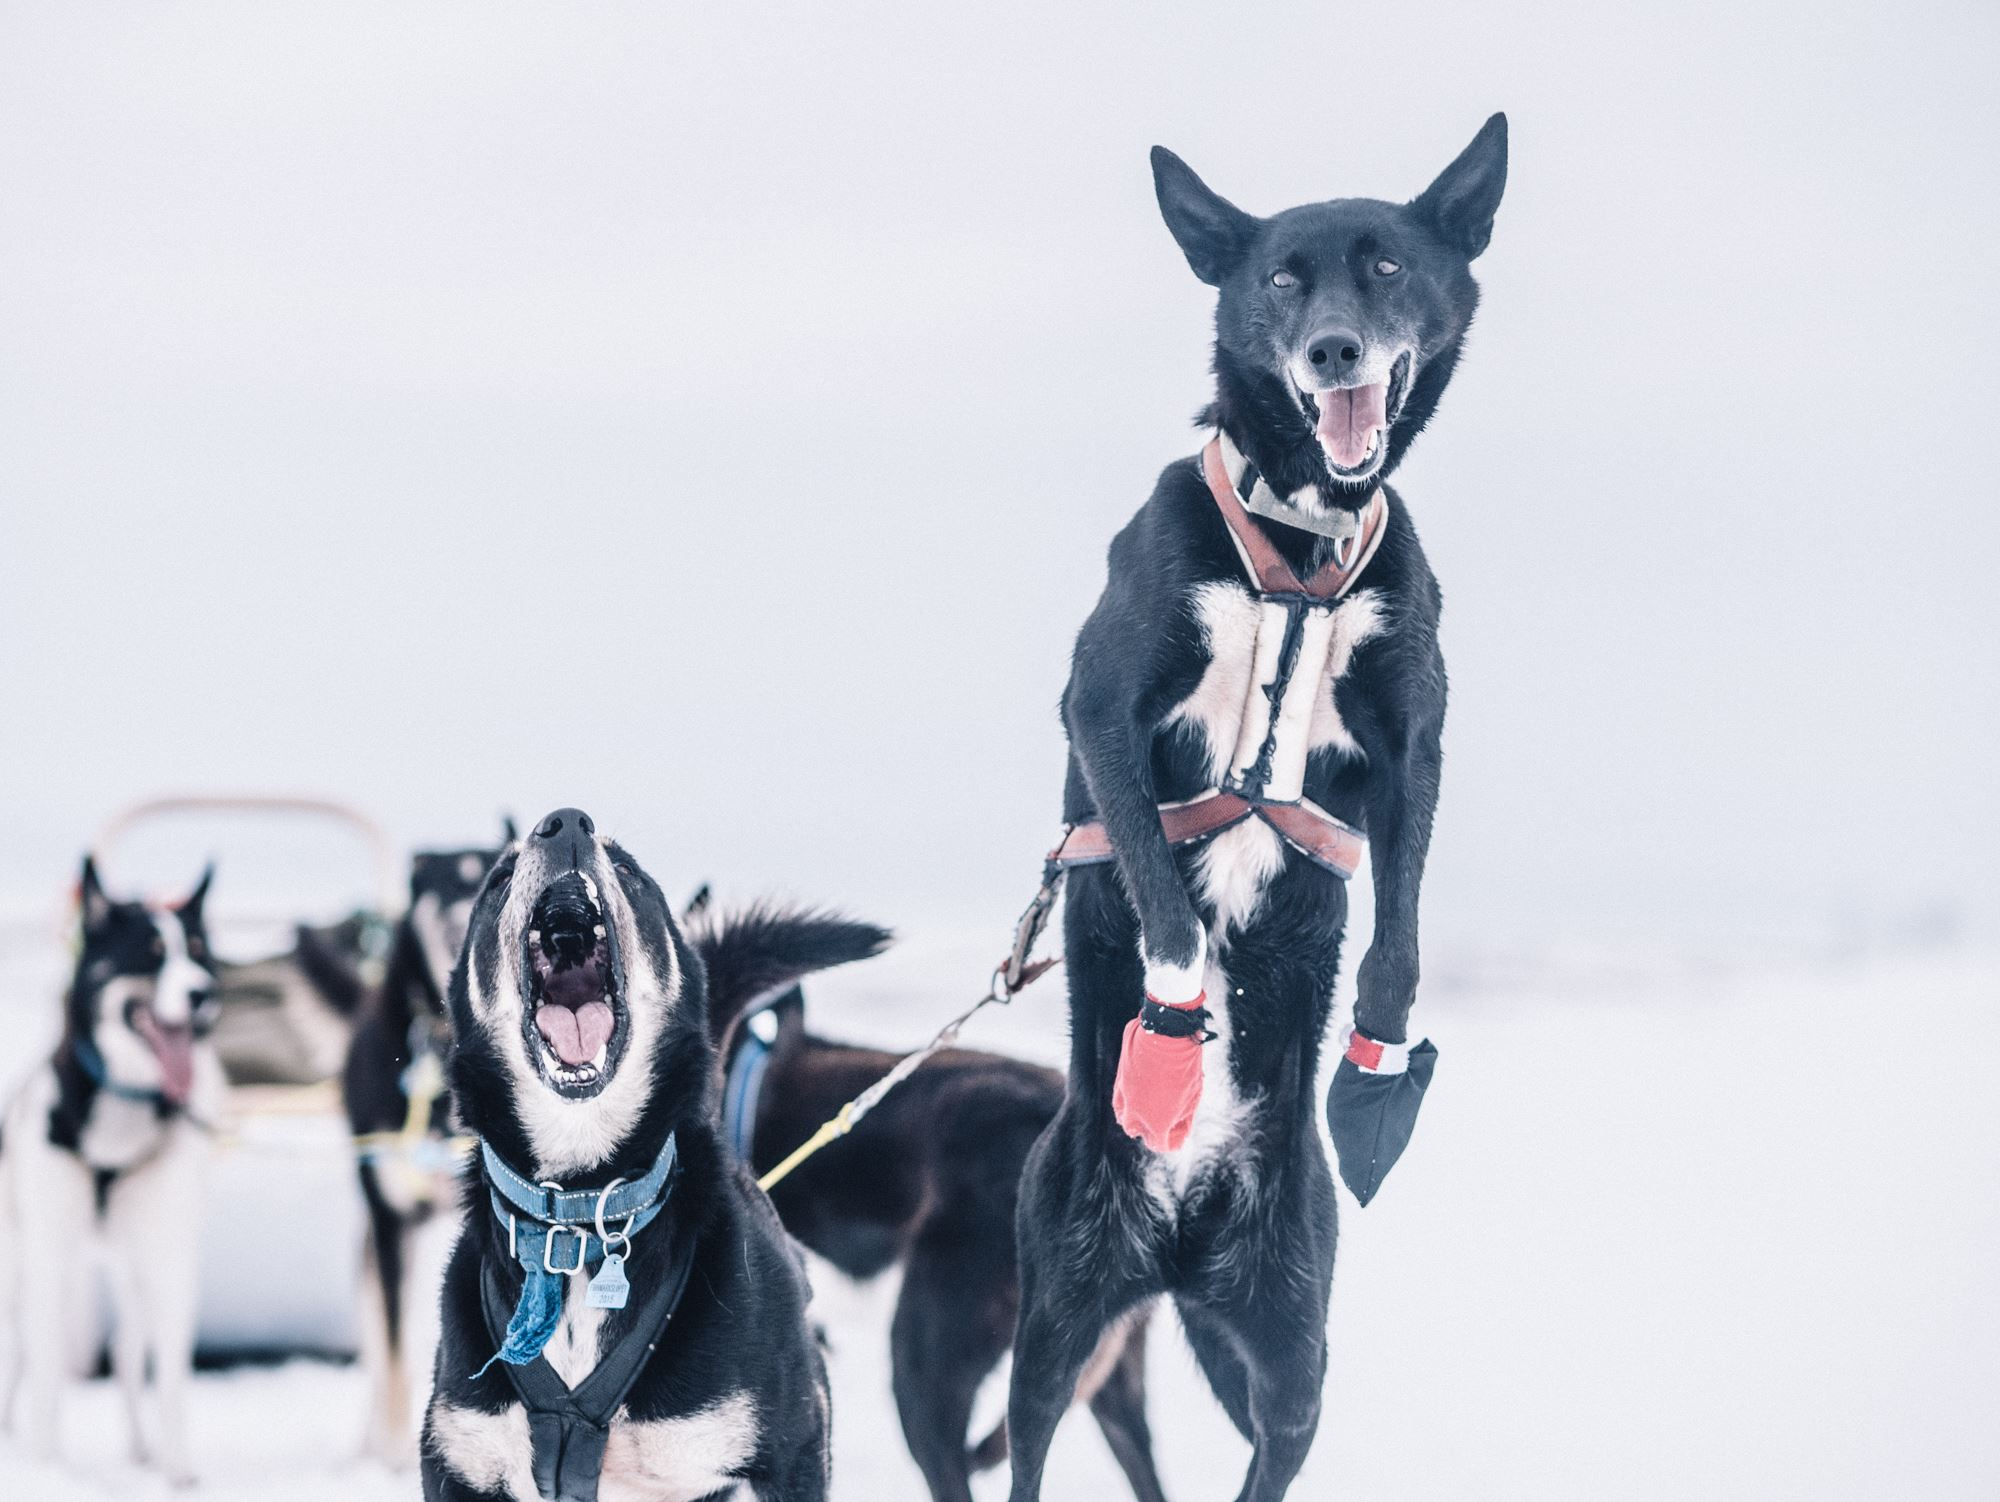 A taste of dog sledding - Trasti & Trine